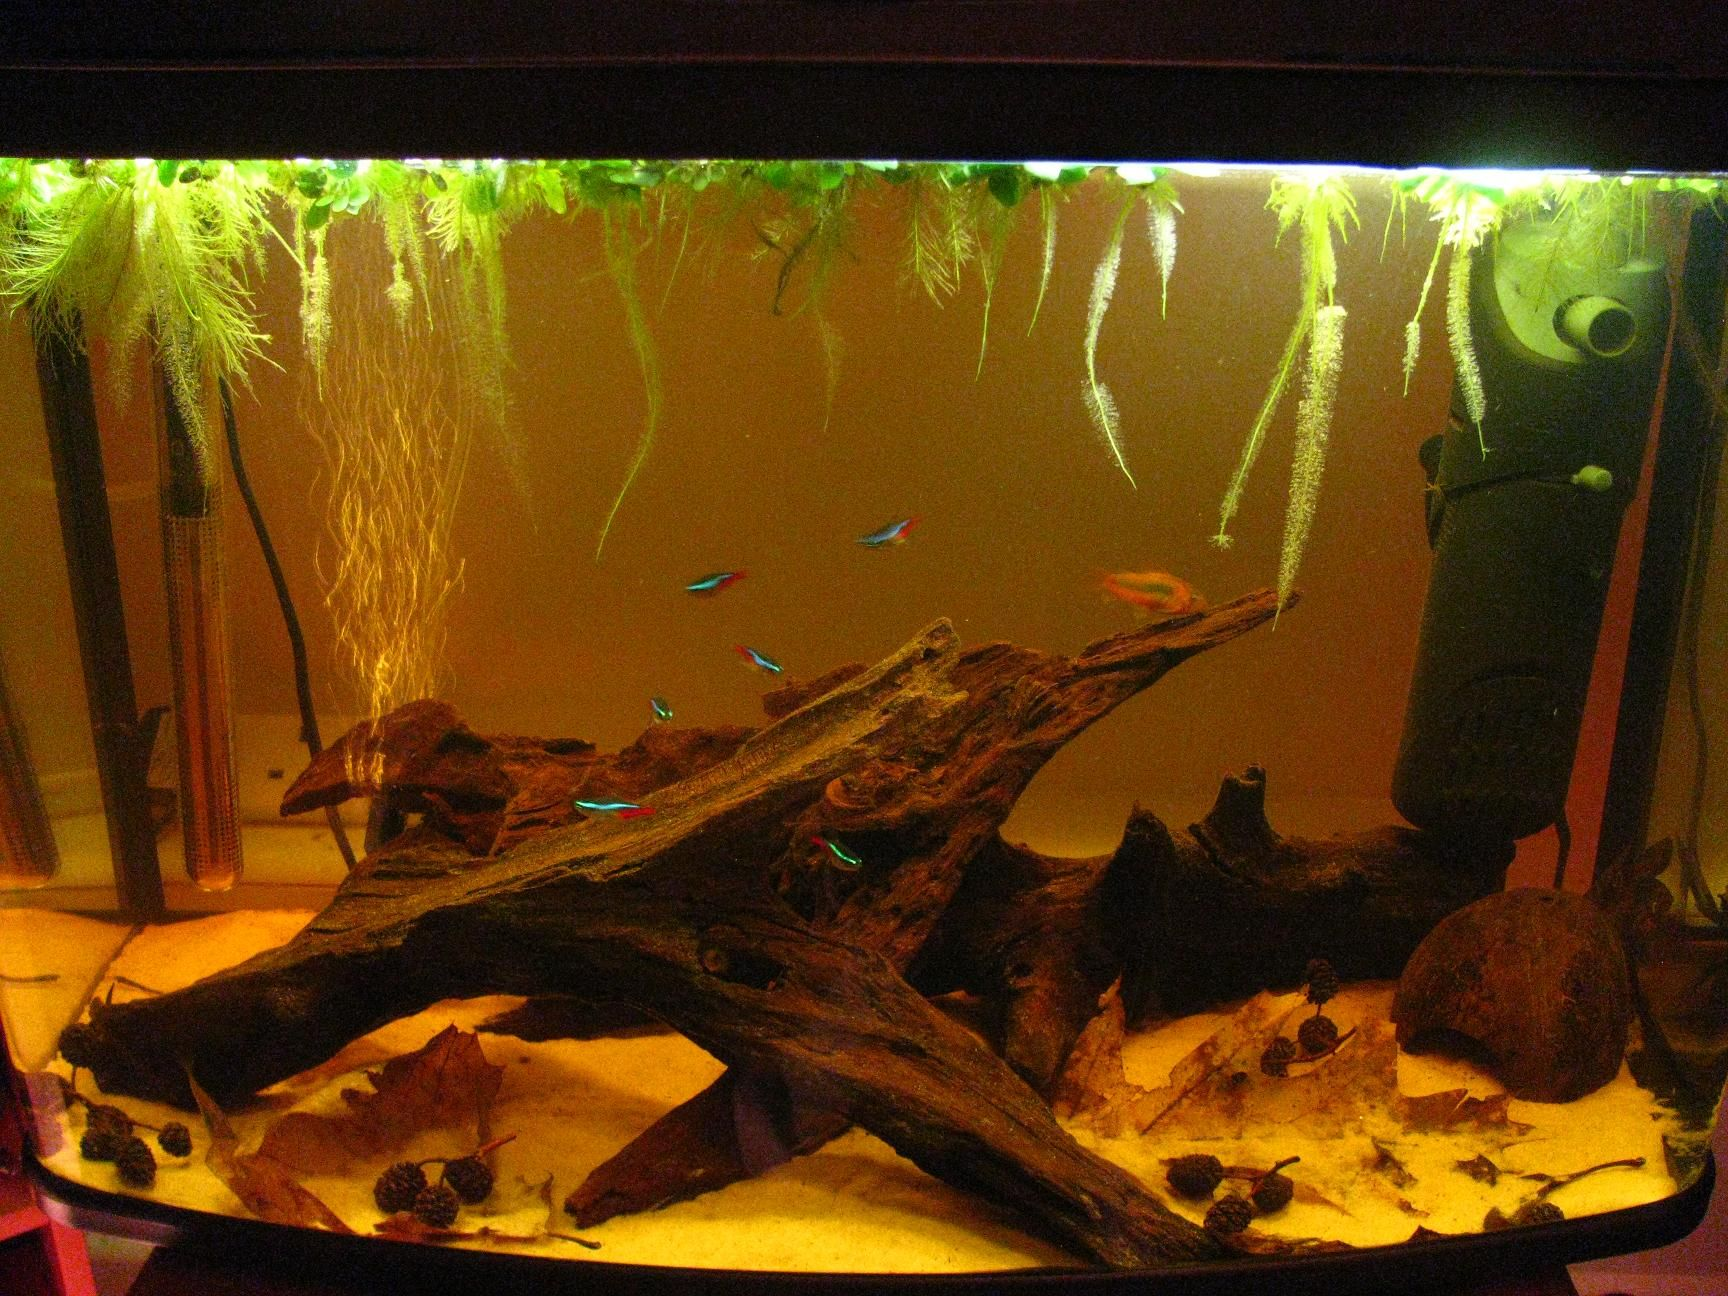 Meilleur De De Aquarium Betta Sch¨me Idées de table